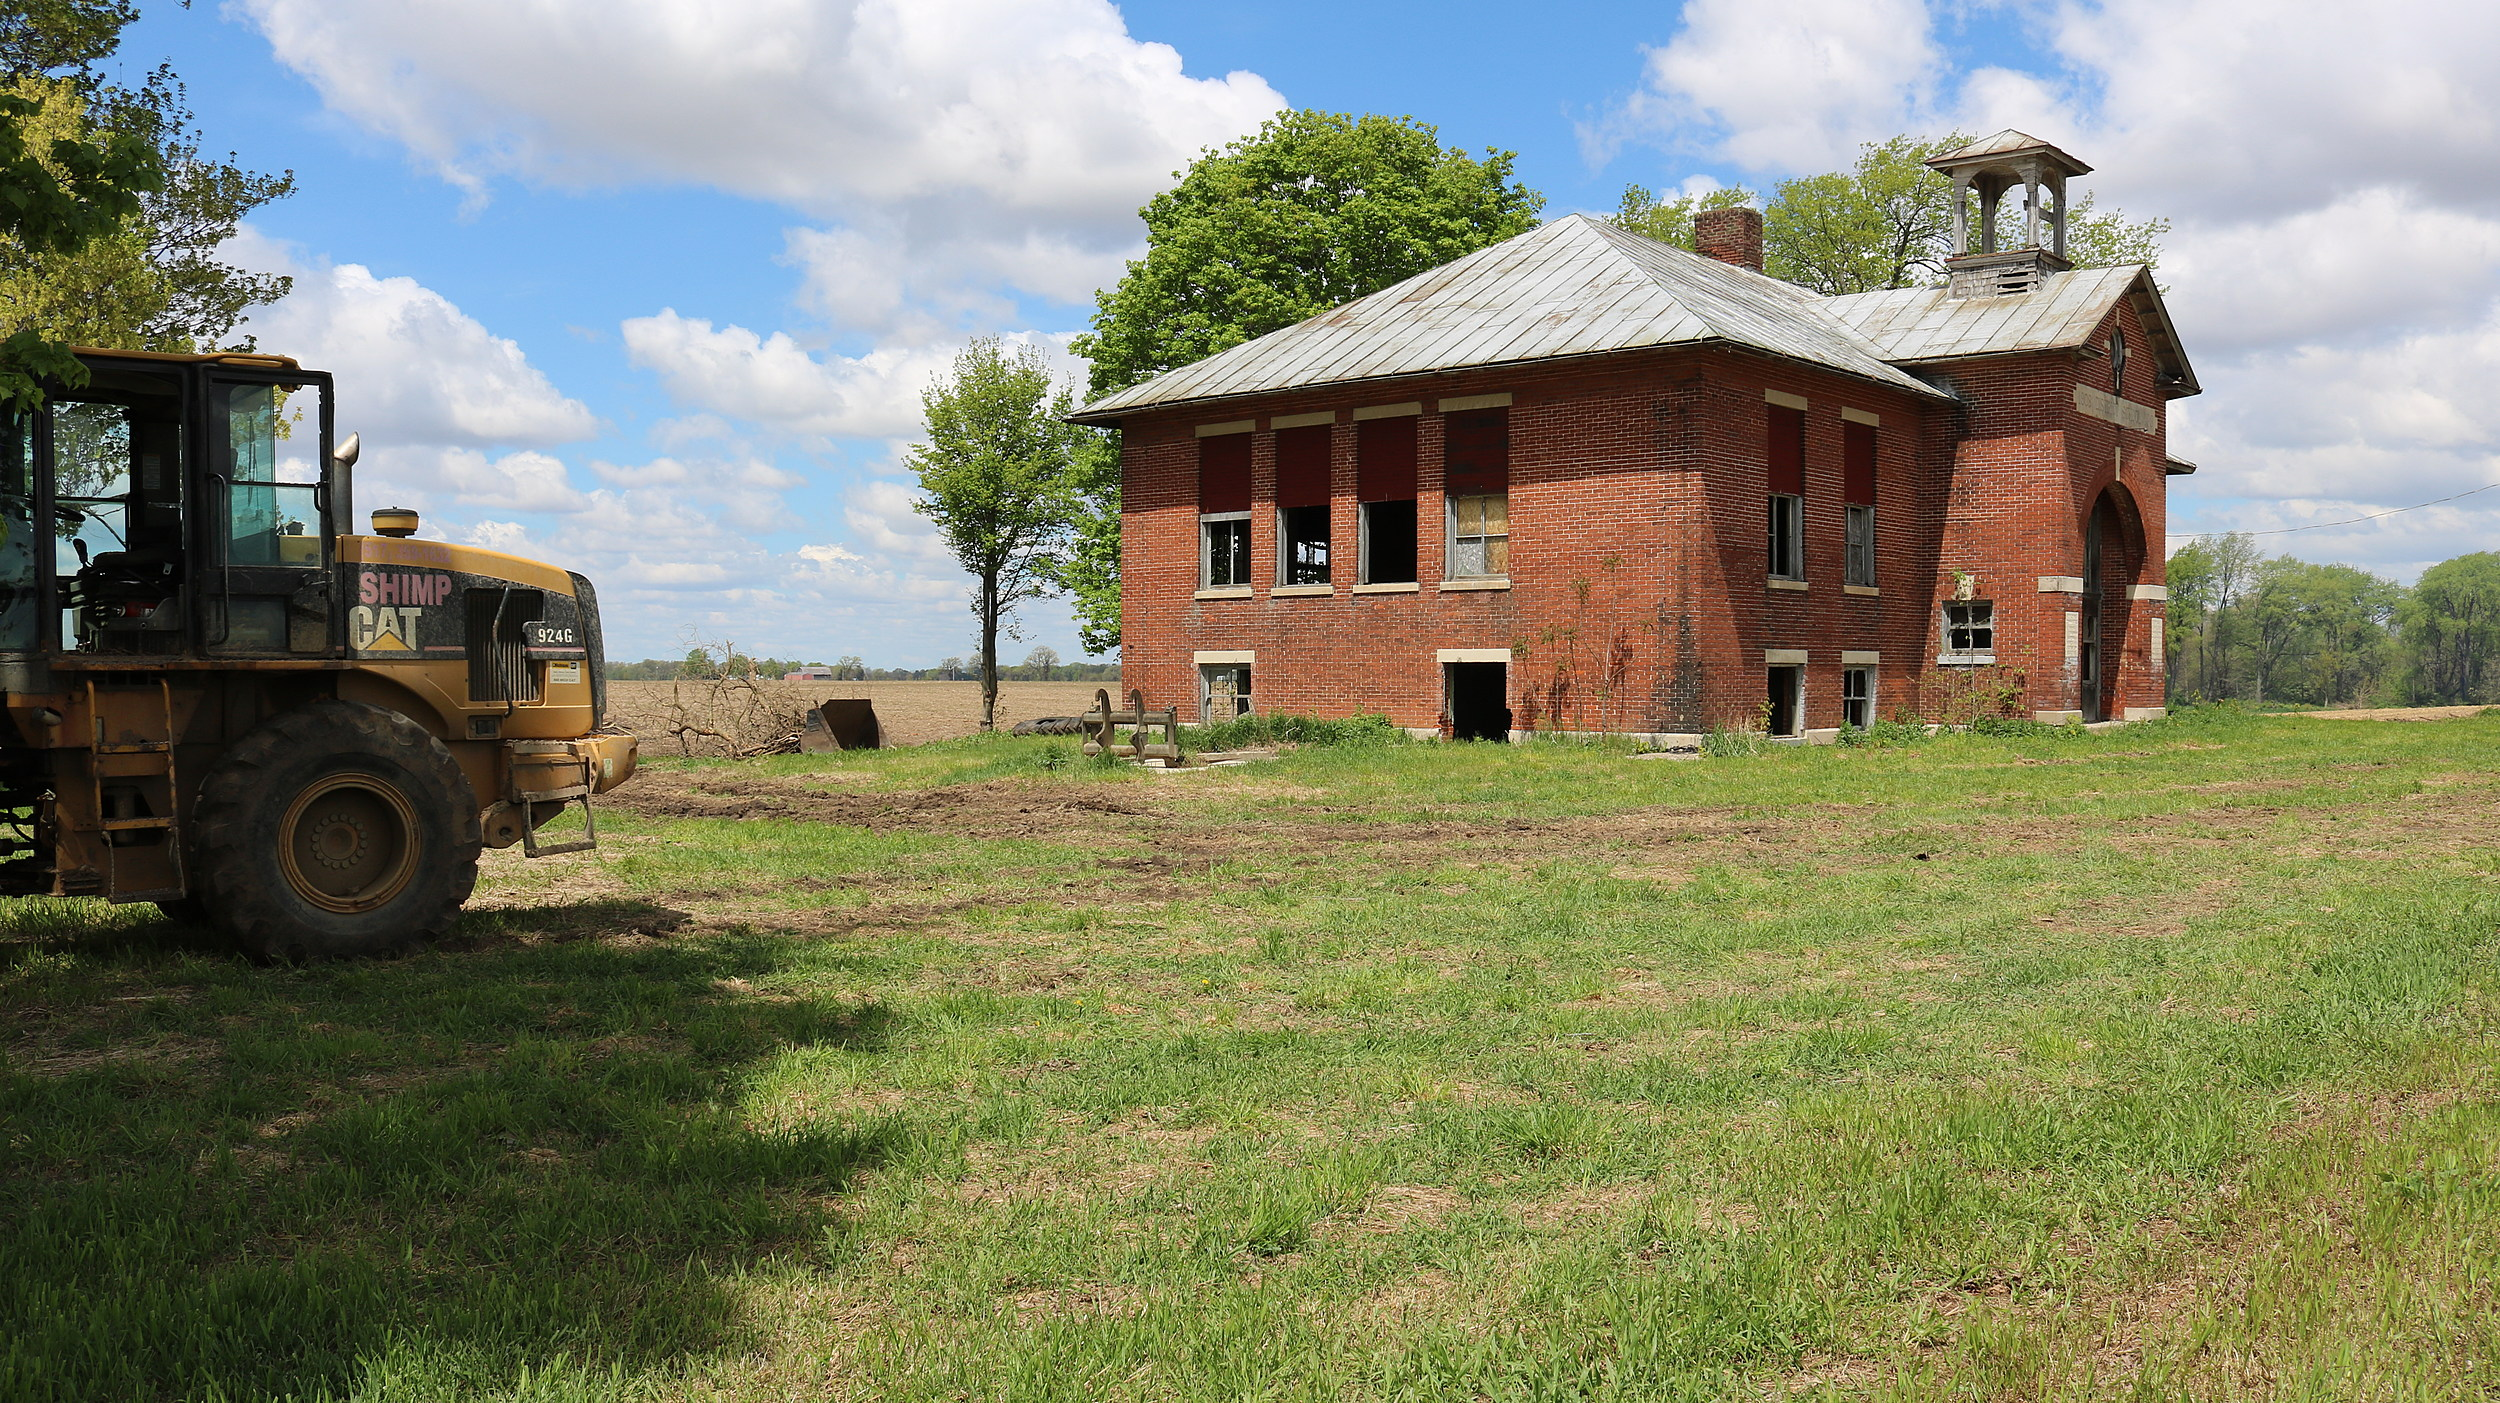 Events At This Abandoned Michigan School Inspired The Movie